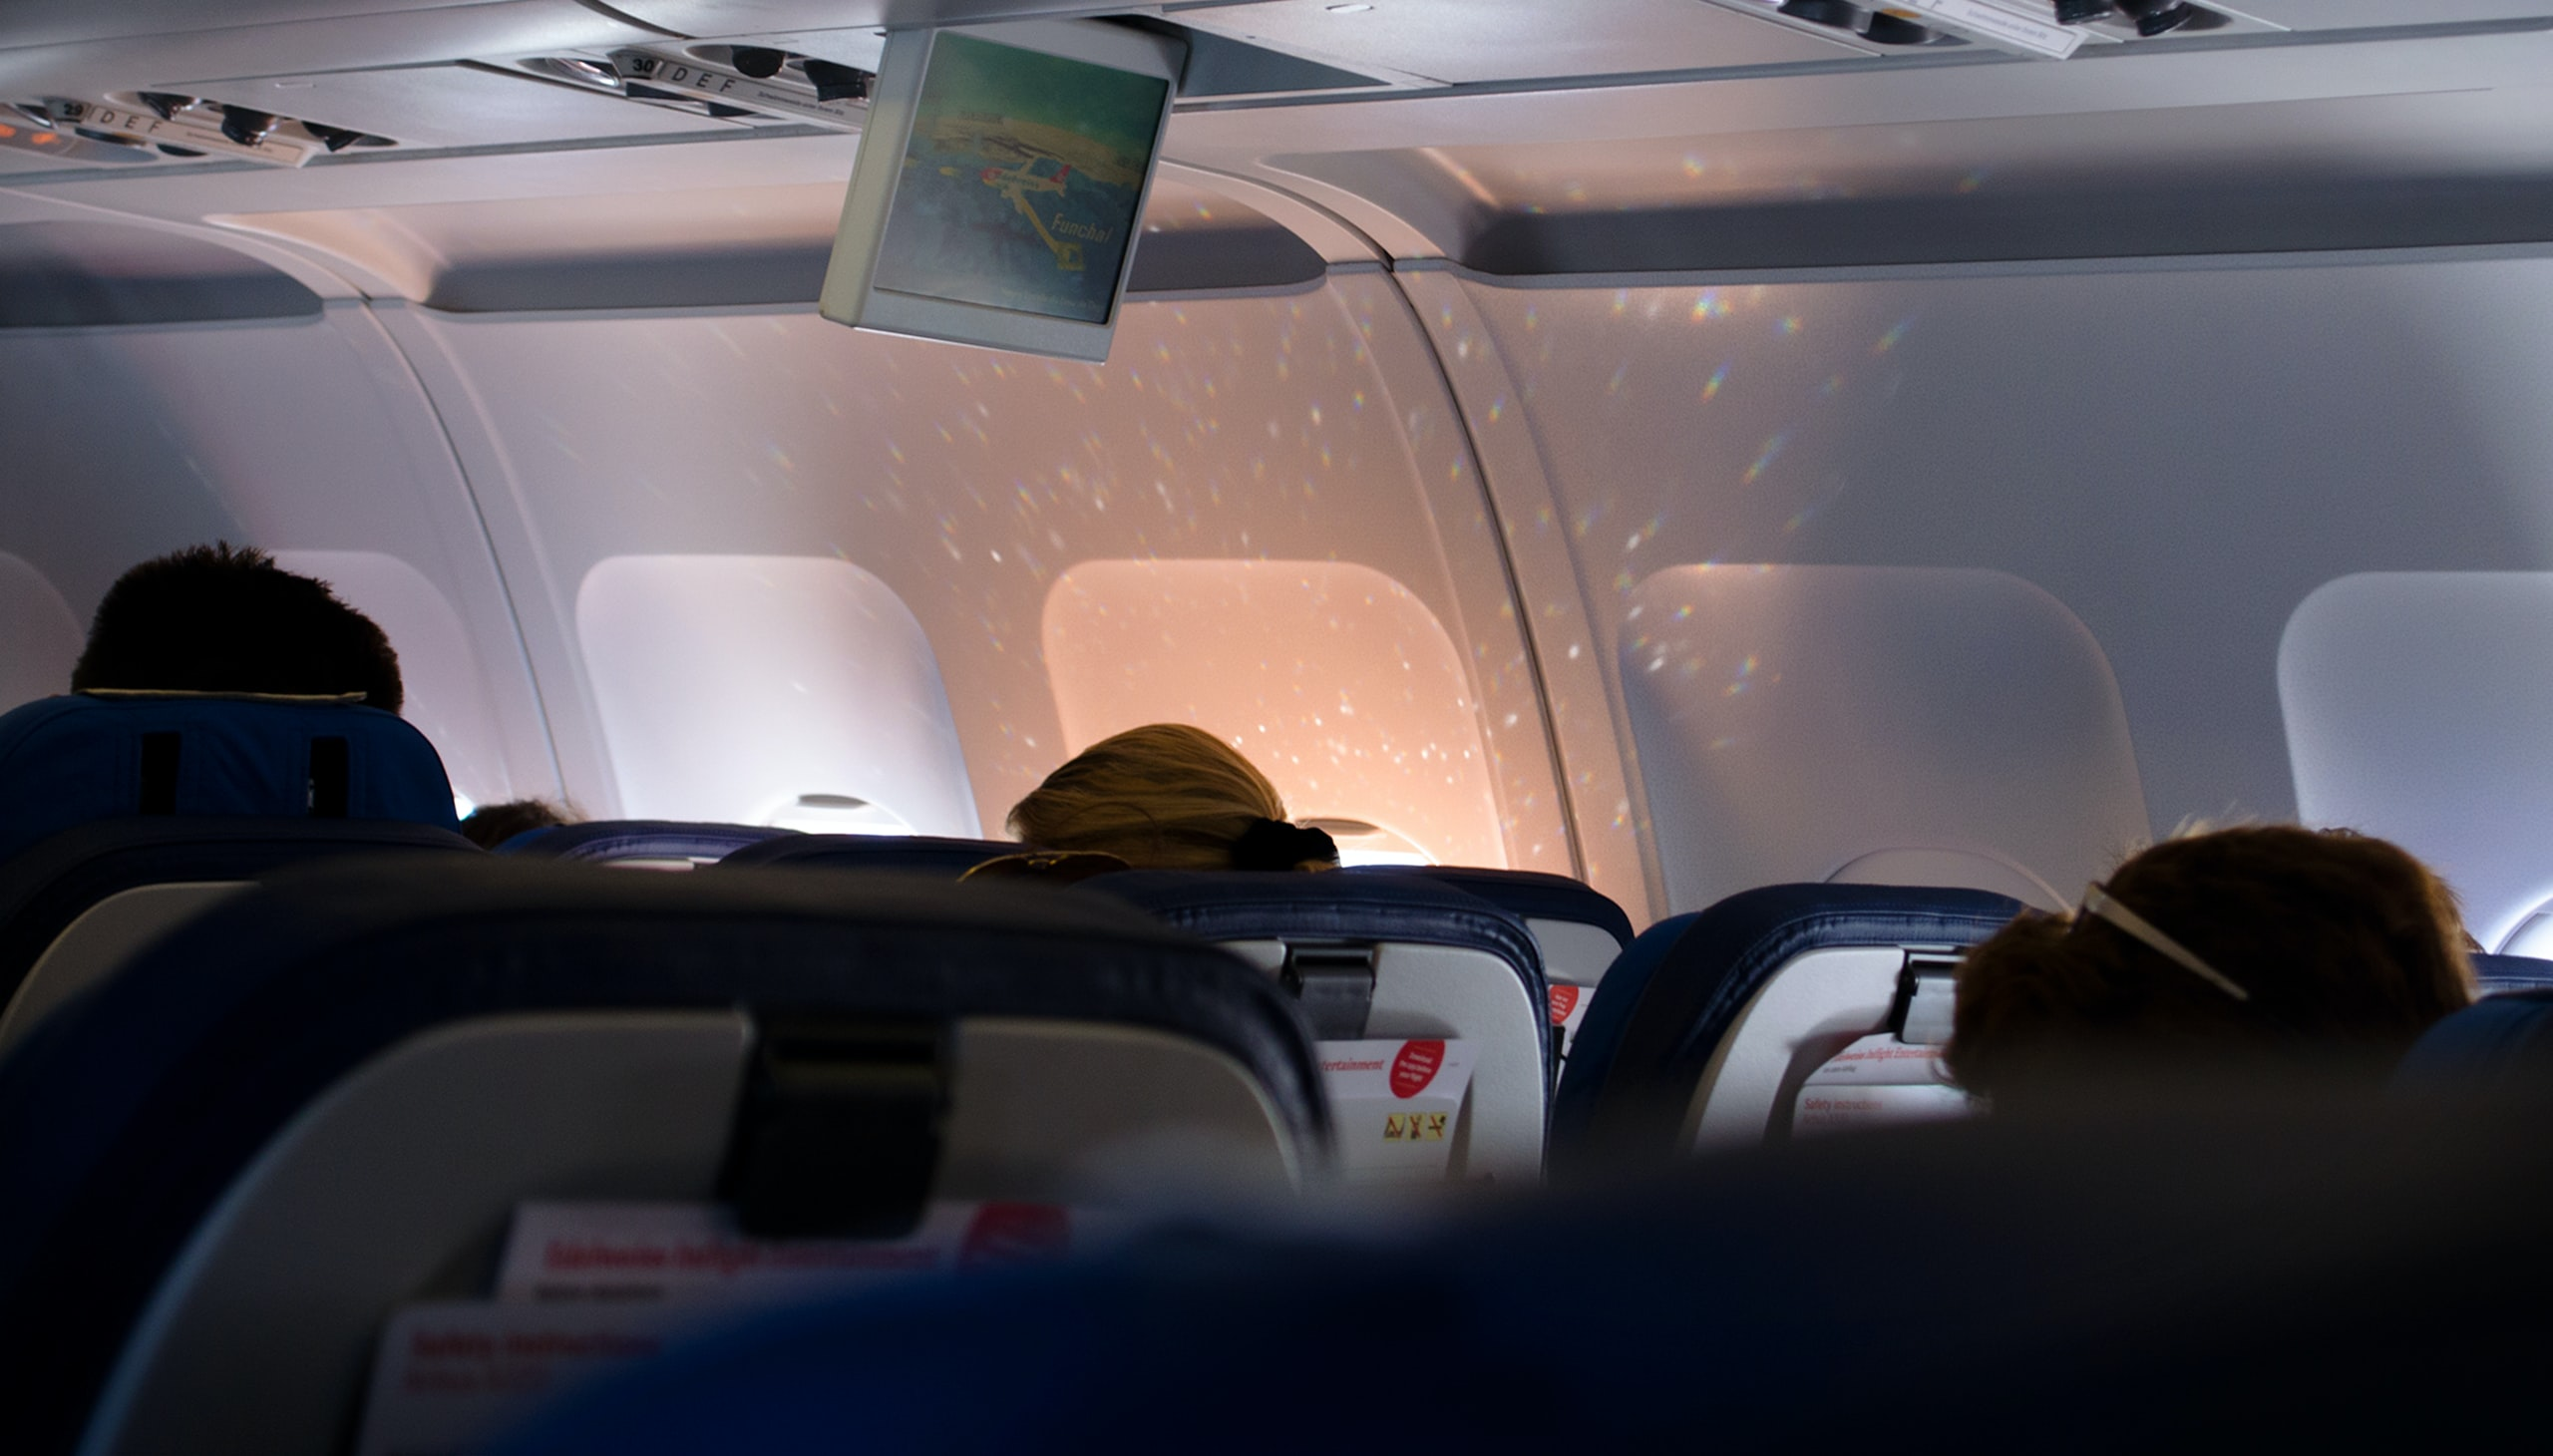 Interior shot of a plane focused on the back of a person sitting by the window illuminating the wall with reflected light